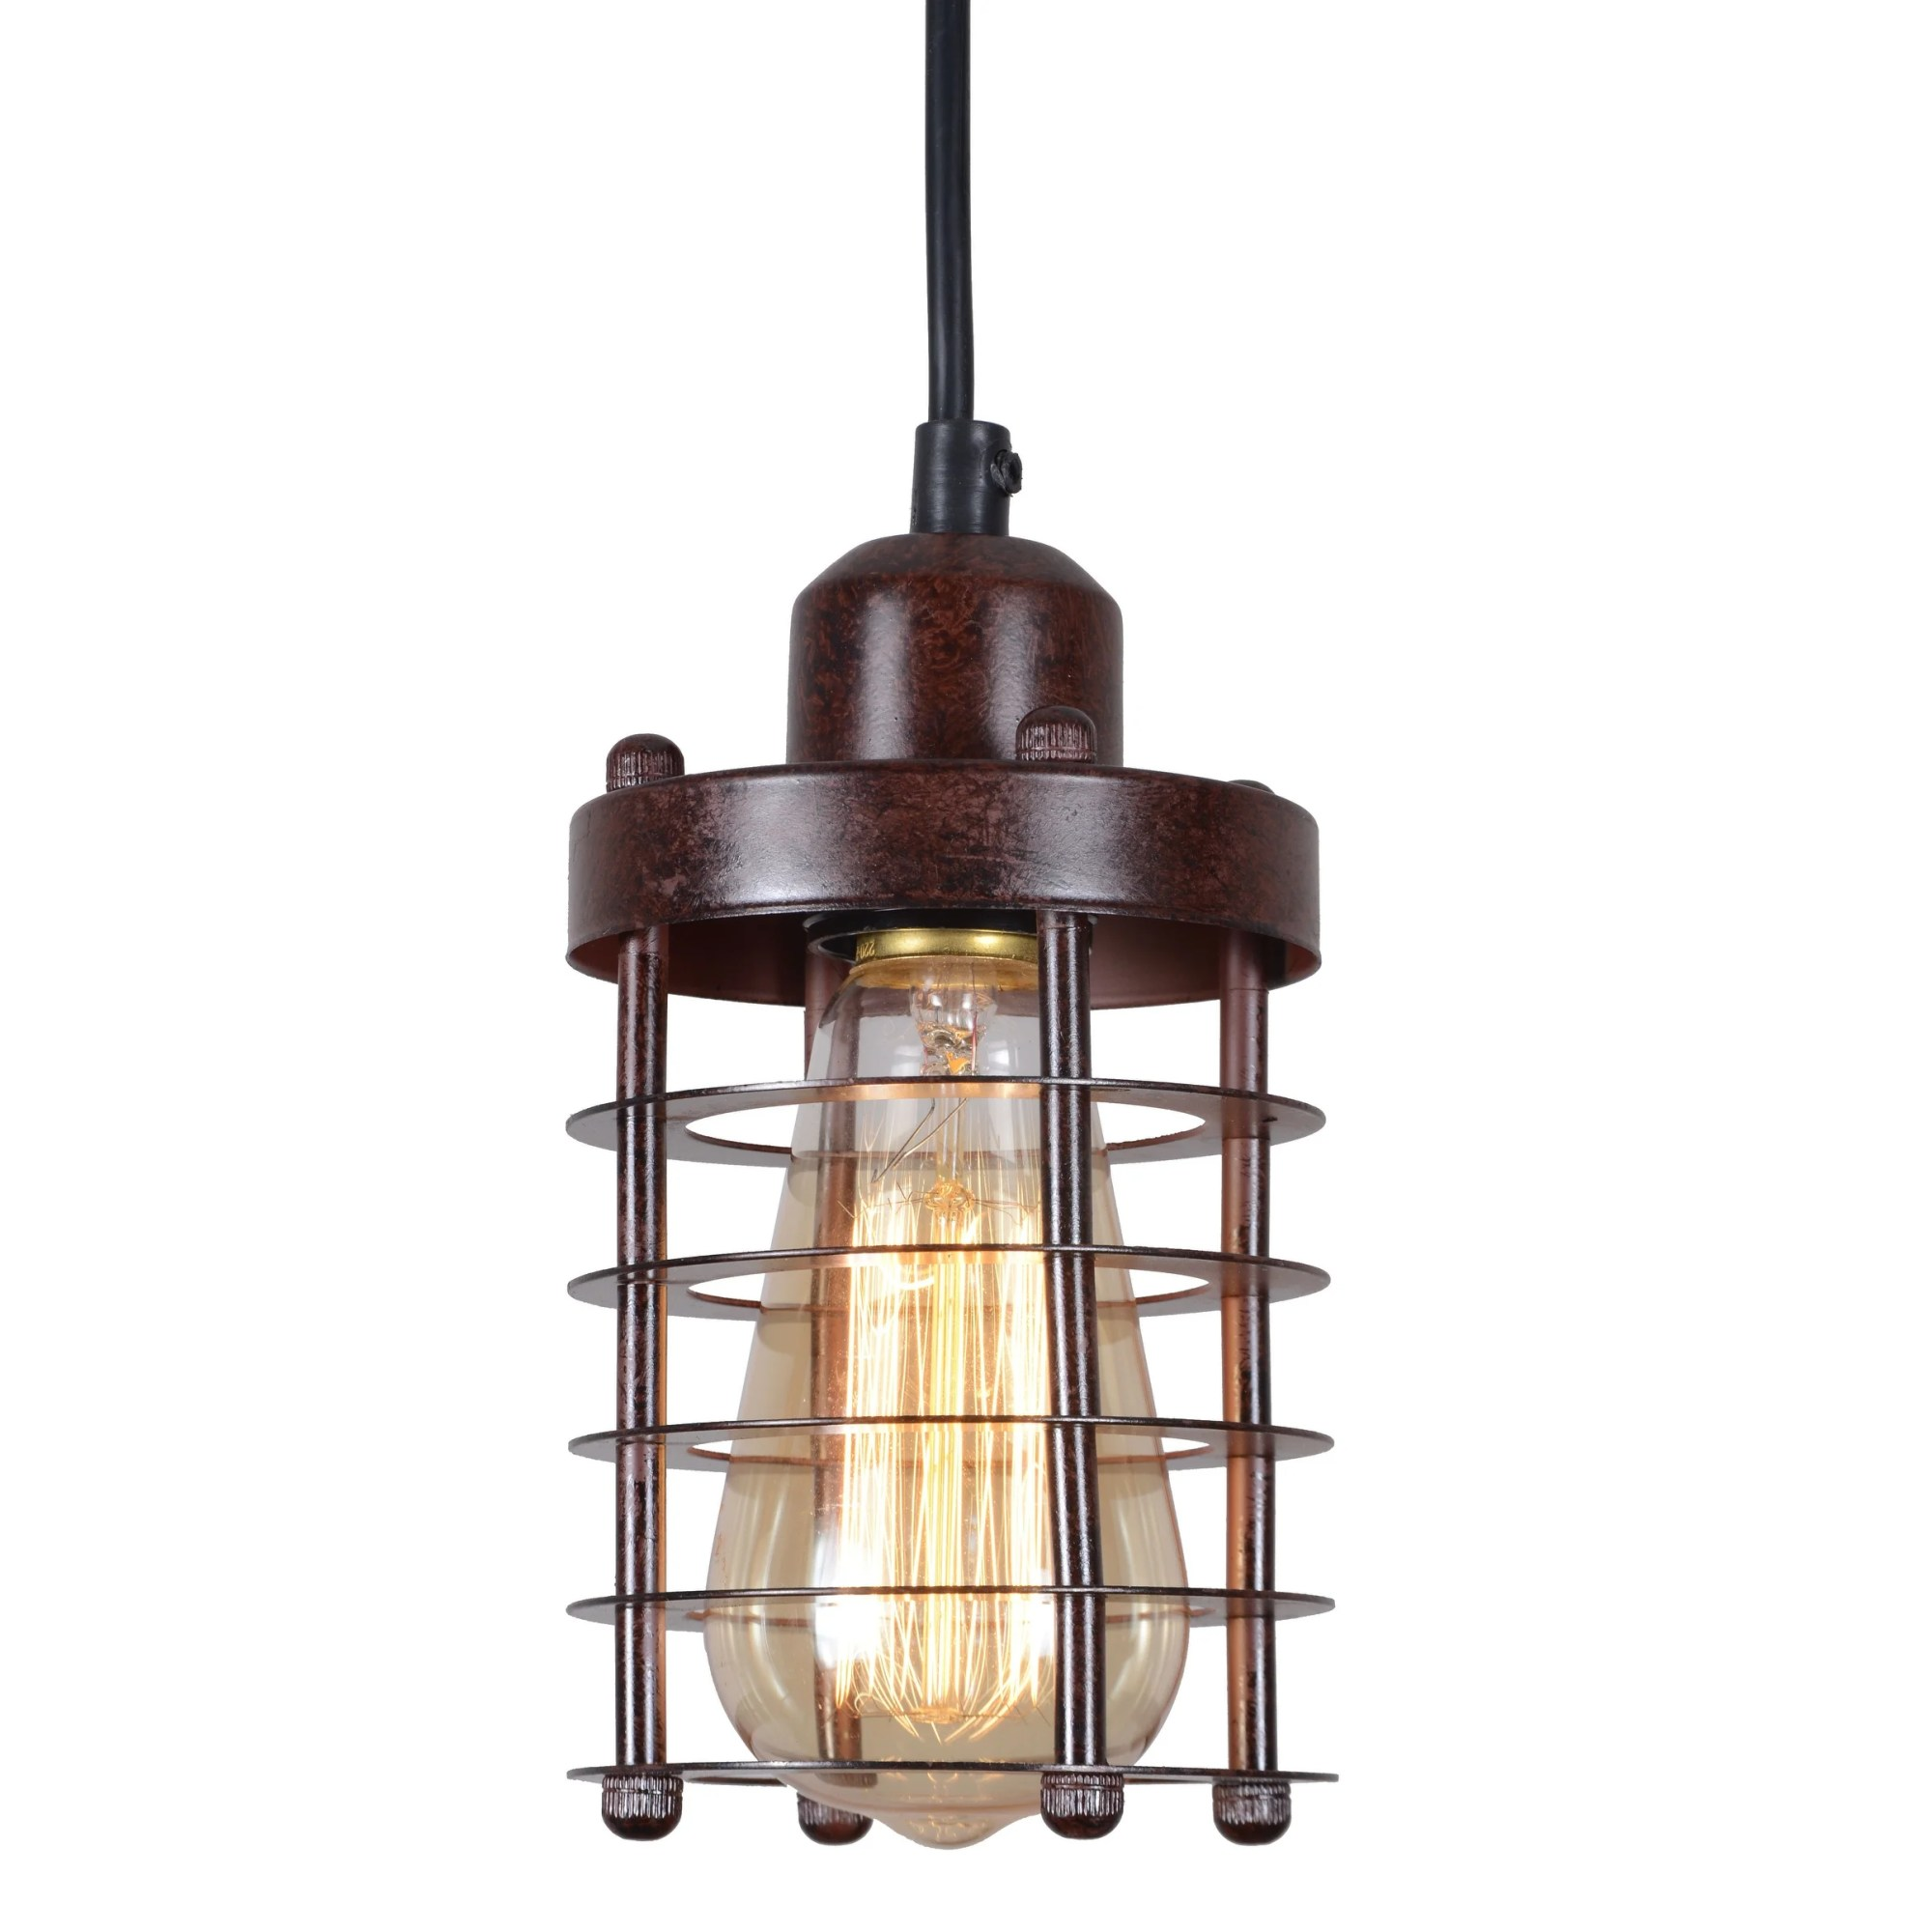 hight resolution of shop rustic wire cage vintage industrial pendant light fixture hall ceiling light fixture updated wiring vintage lighting on on hall